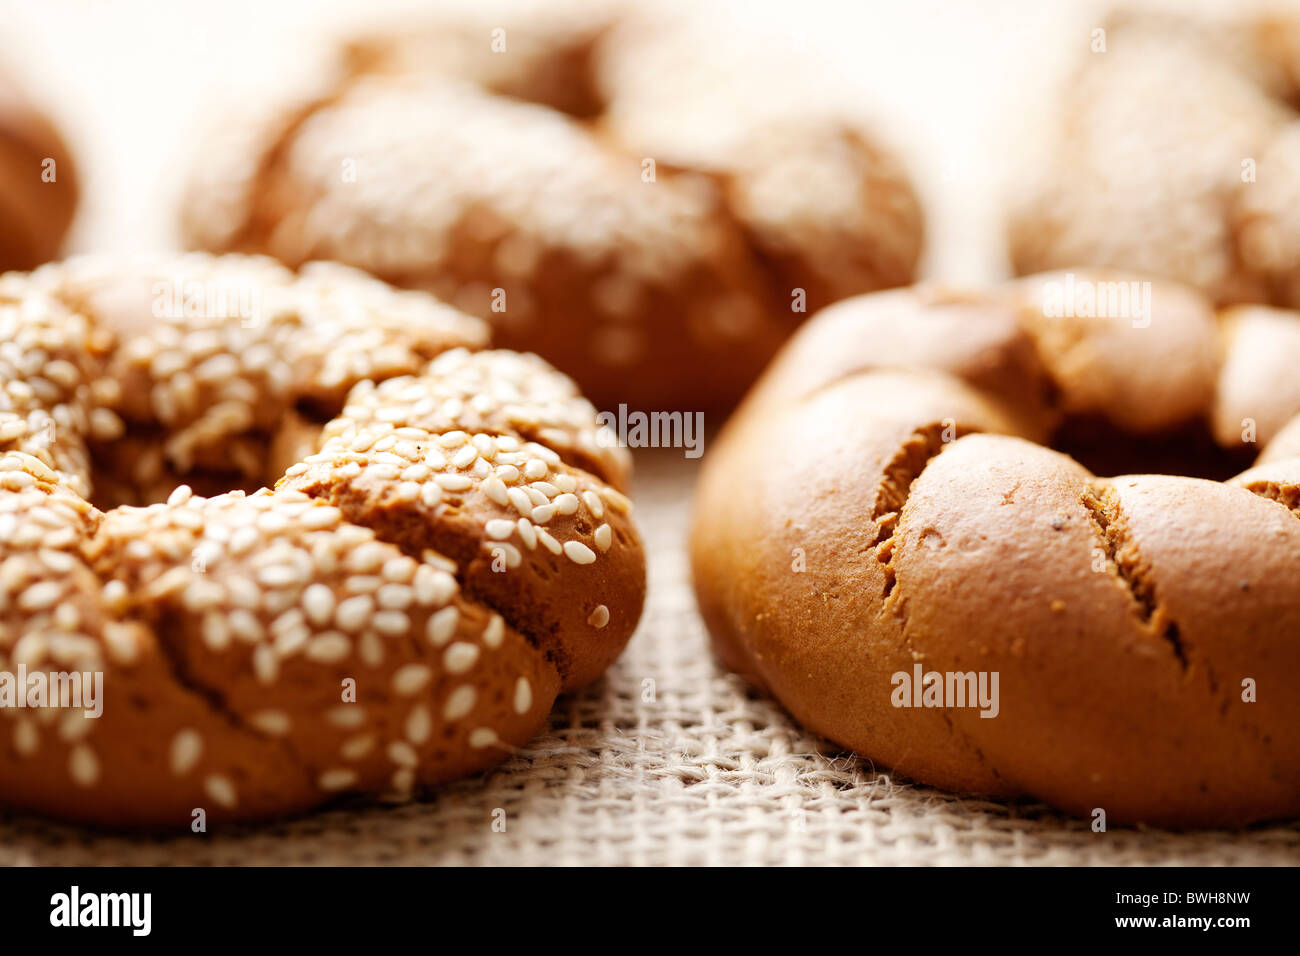 fresh rustic bread/bagels, shallow dof - Stock Image